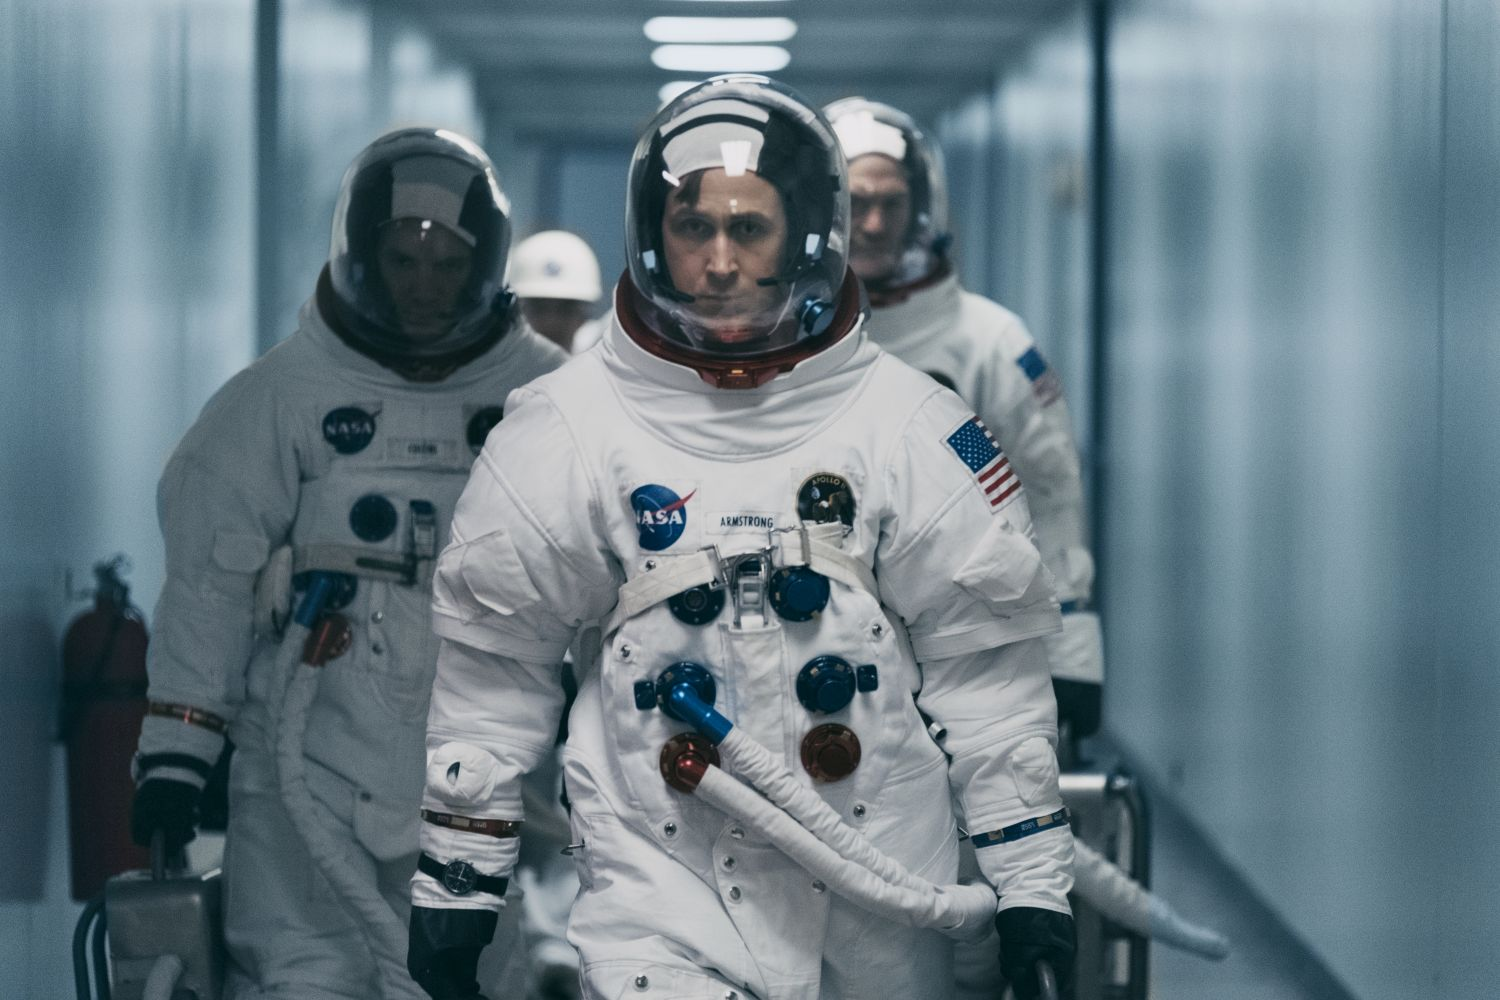 The characters of Armstrong, Mike Collins, and Buzz Aldrin, the crew of Apollo 11, walk out of the suit-up room on their way to their date with destiny.